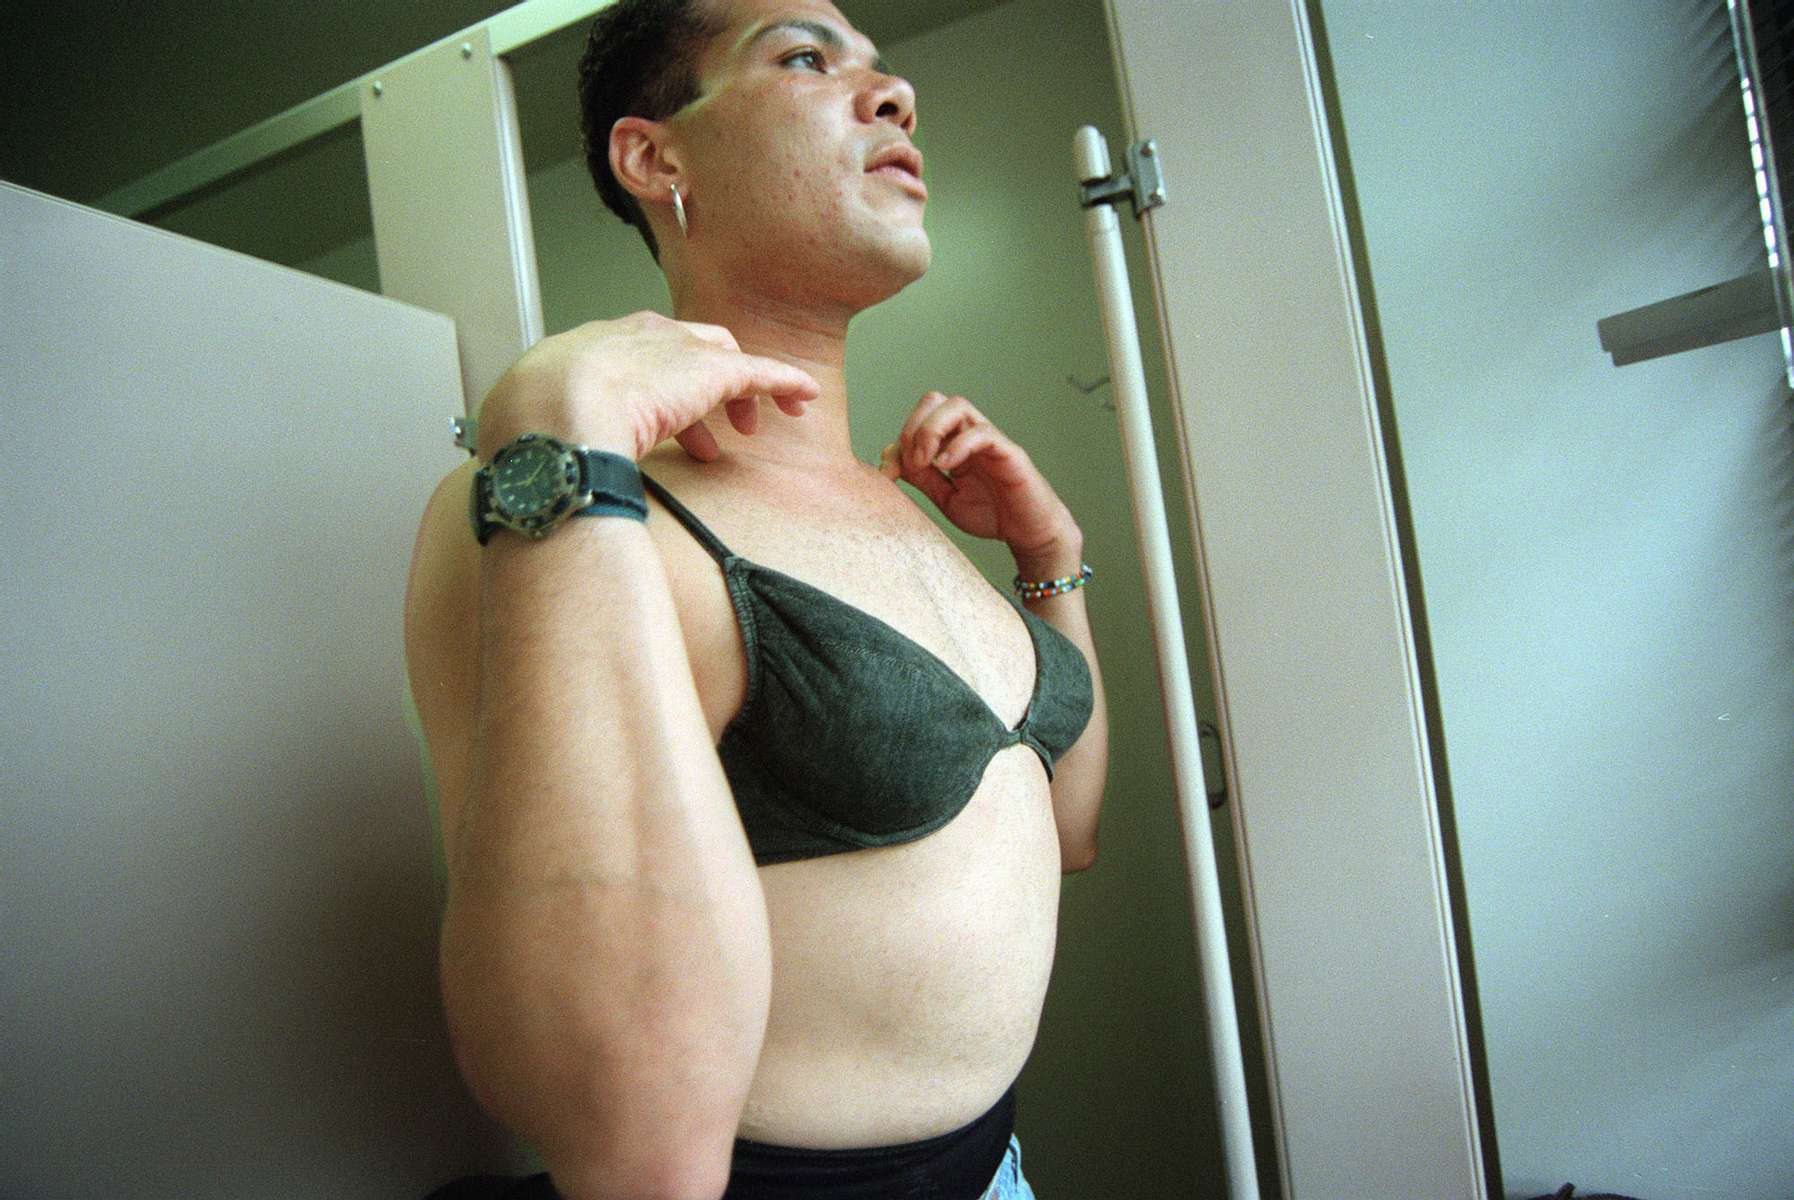 Angel puts on her bra while changing from male to female in a public bathroom at the Gay Man's Health Crisis Center in the West Village's meat-packing district in New York. Angel's step-father does not know she dresses as a woman when out of the house, so he must change in public restrooms. September 1999.